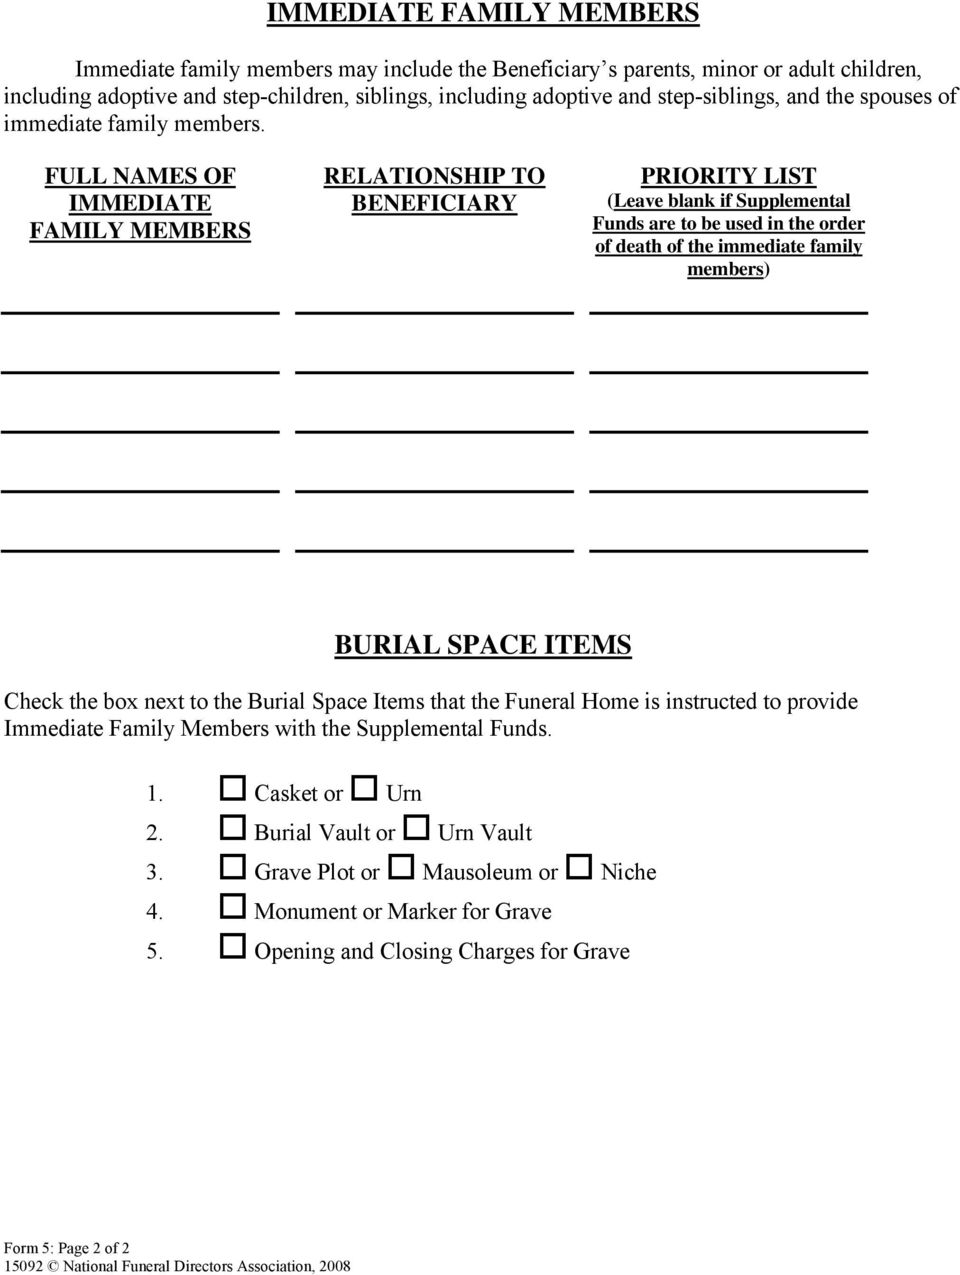 FULL NAMES OF IMMEDIATE FAMILY MEMBERS RELATIONSHIP TO BENEFICIARY PRIORITY LIST (Leave blank if Supplemental Funds are to be used in the order of death of the immediate family members) BURIAL SPACE